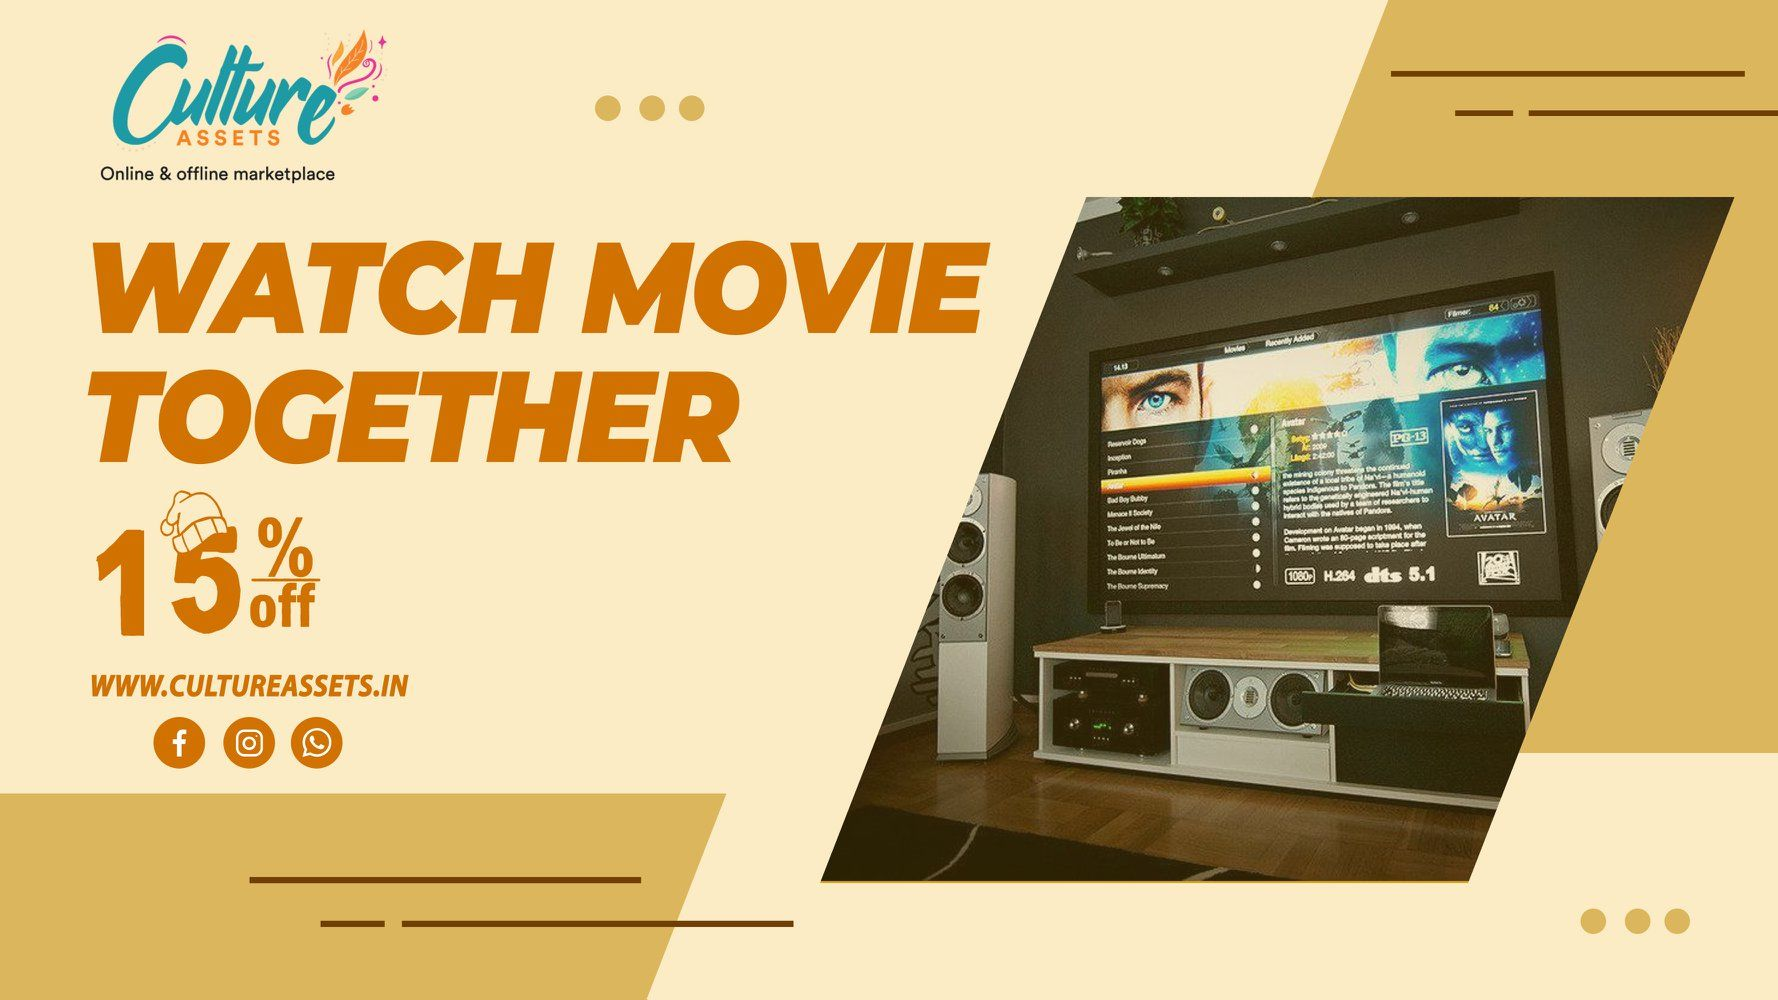 Buy Home Theater System Online on Culture Assets. . . . . #hometheatersystem #hometheater #hometheaterdesign #hometheaterroom #mediaroom #hometheatersetup #hometheaterdecor #hometheaters #homecinema #cinemaroomdesign #htmartfeature #cinemaroomideas #hometheaterexpert #mediaroomdecor #mediaroomhub #hometheatermart #hometheaterstyle #moviefan #mediaroomdesign #htmart #mediaroomfurniture #mediaroompro #cinemaroom #mediaroomideas #hometheaterlife #mancave